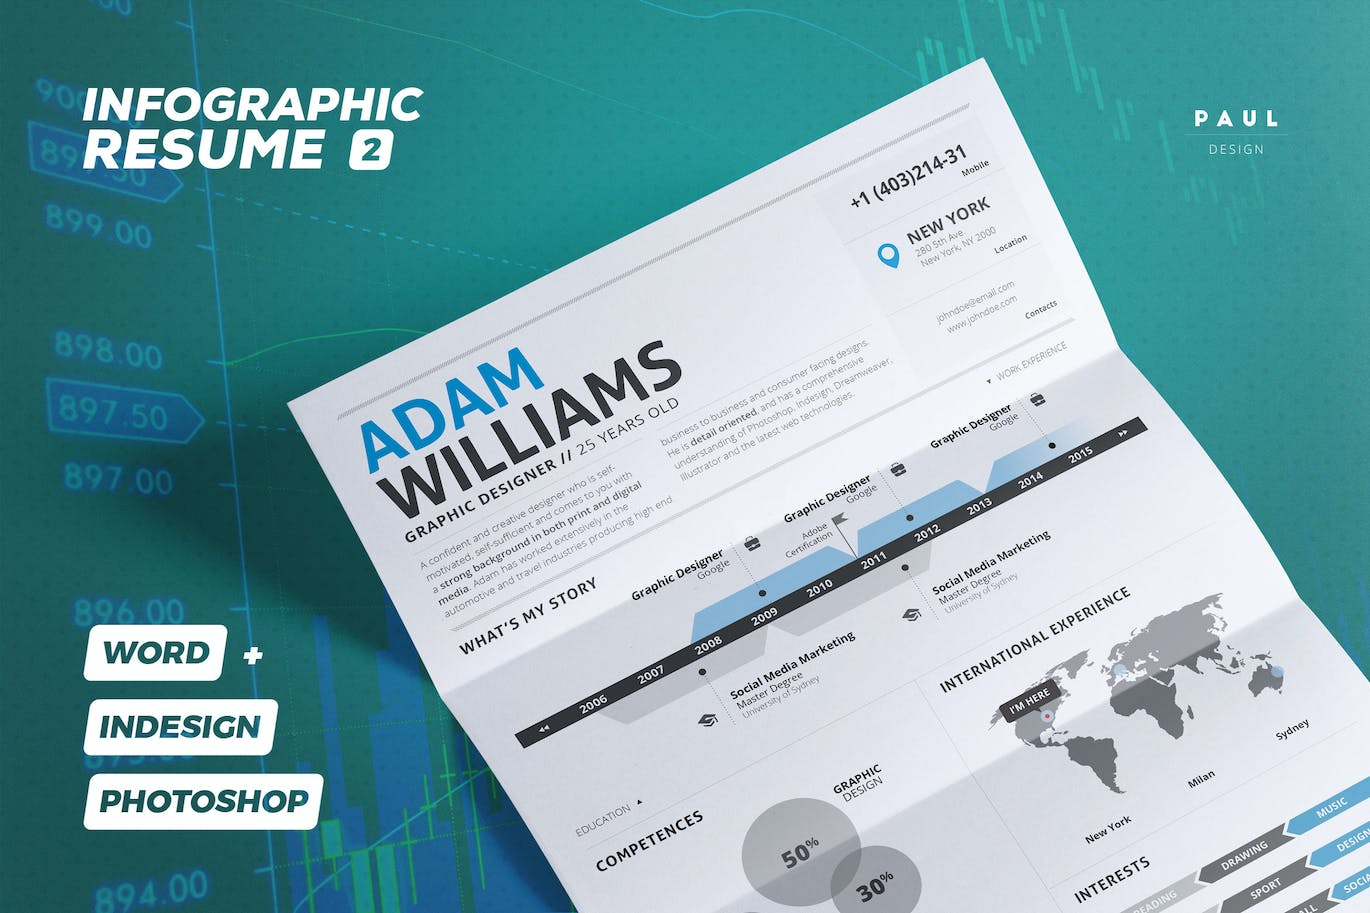 infographic resume cv volume 2 by paolo6180 on envato elements infographic resume cv volume 2